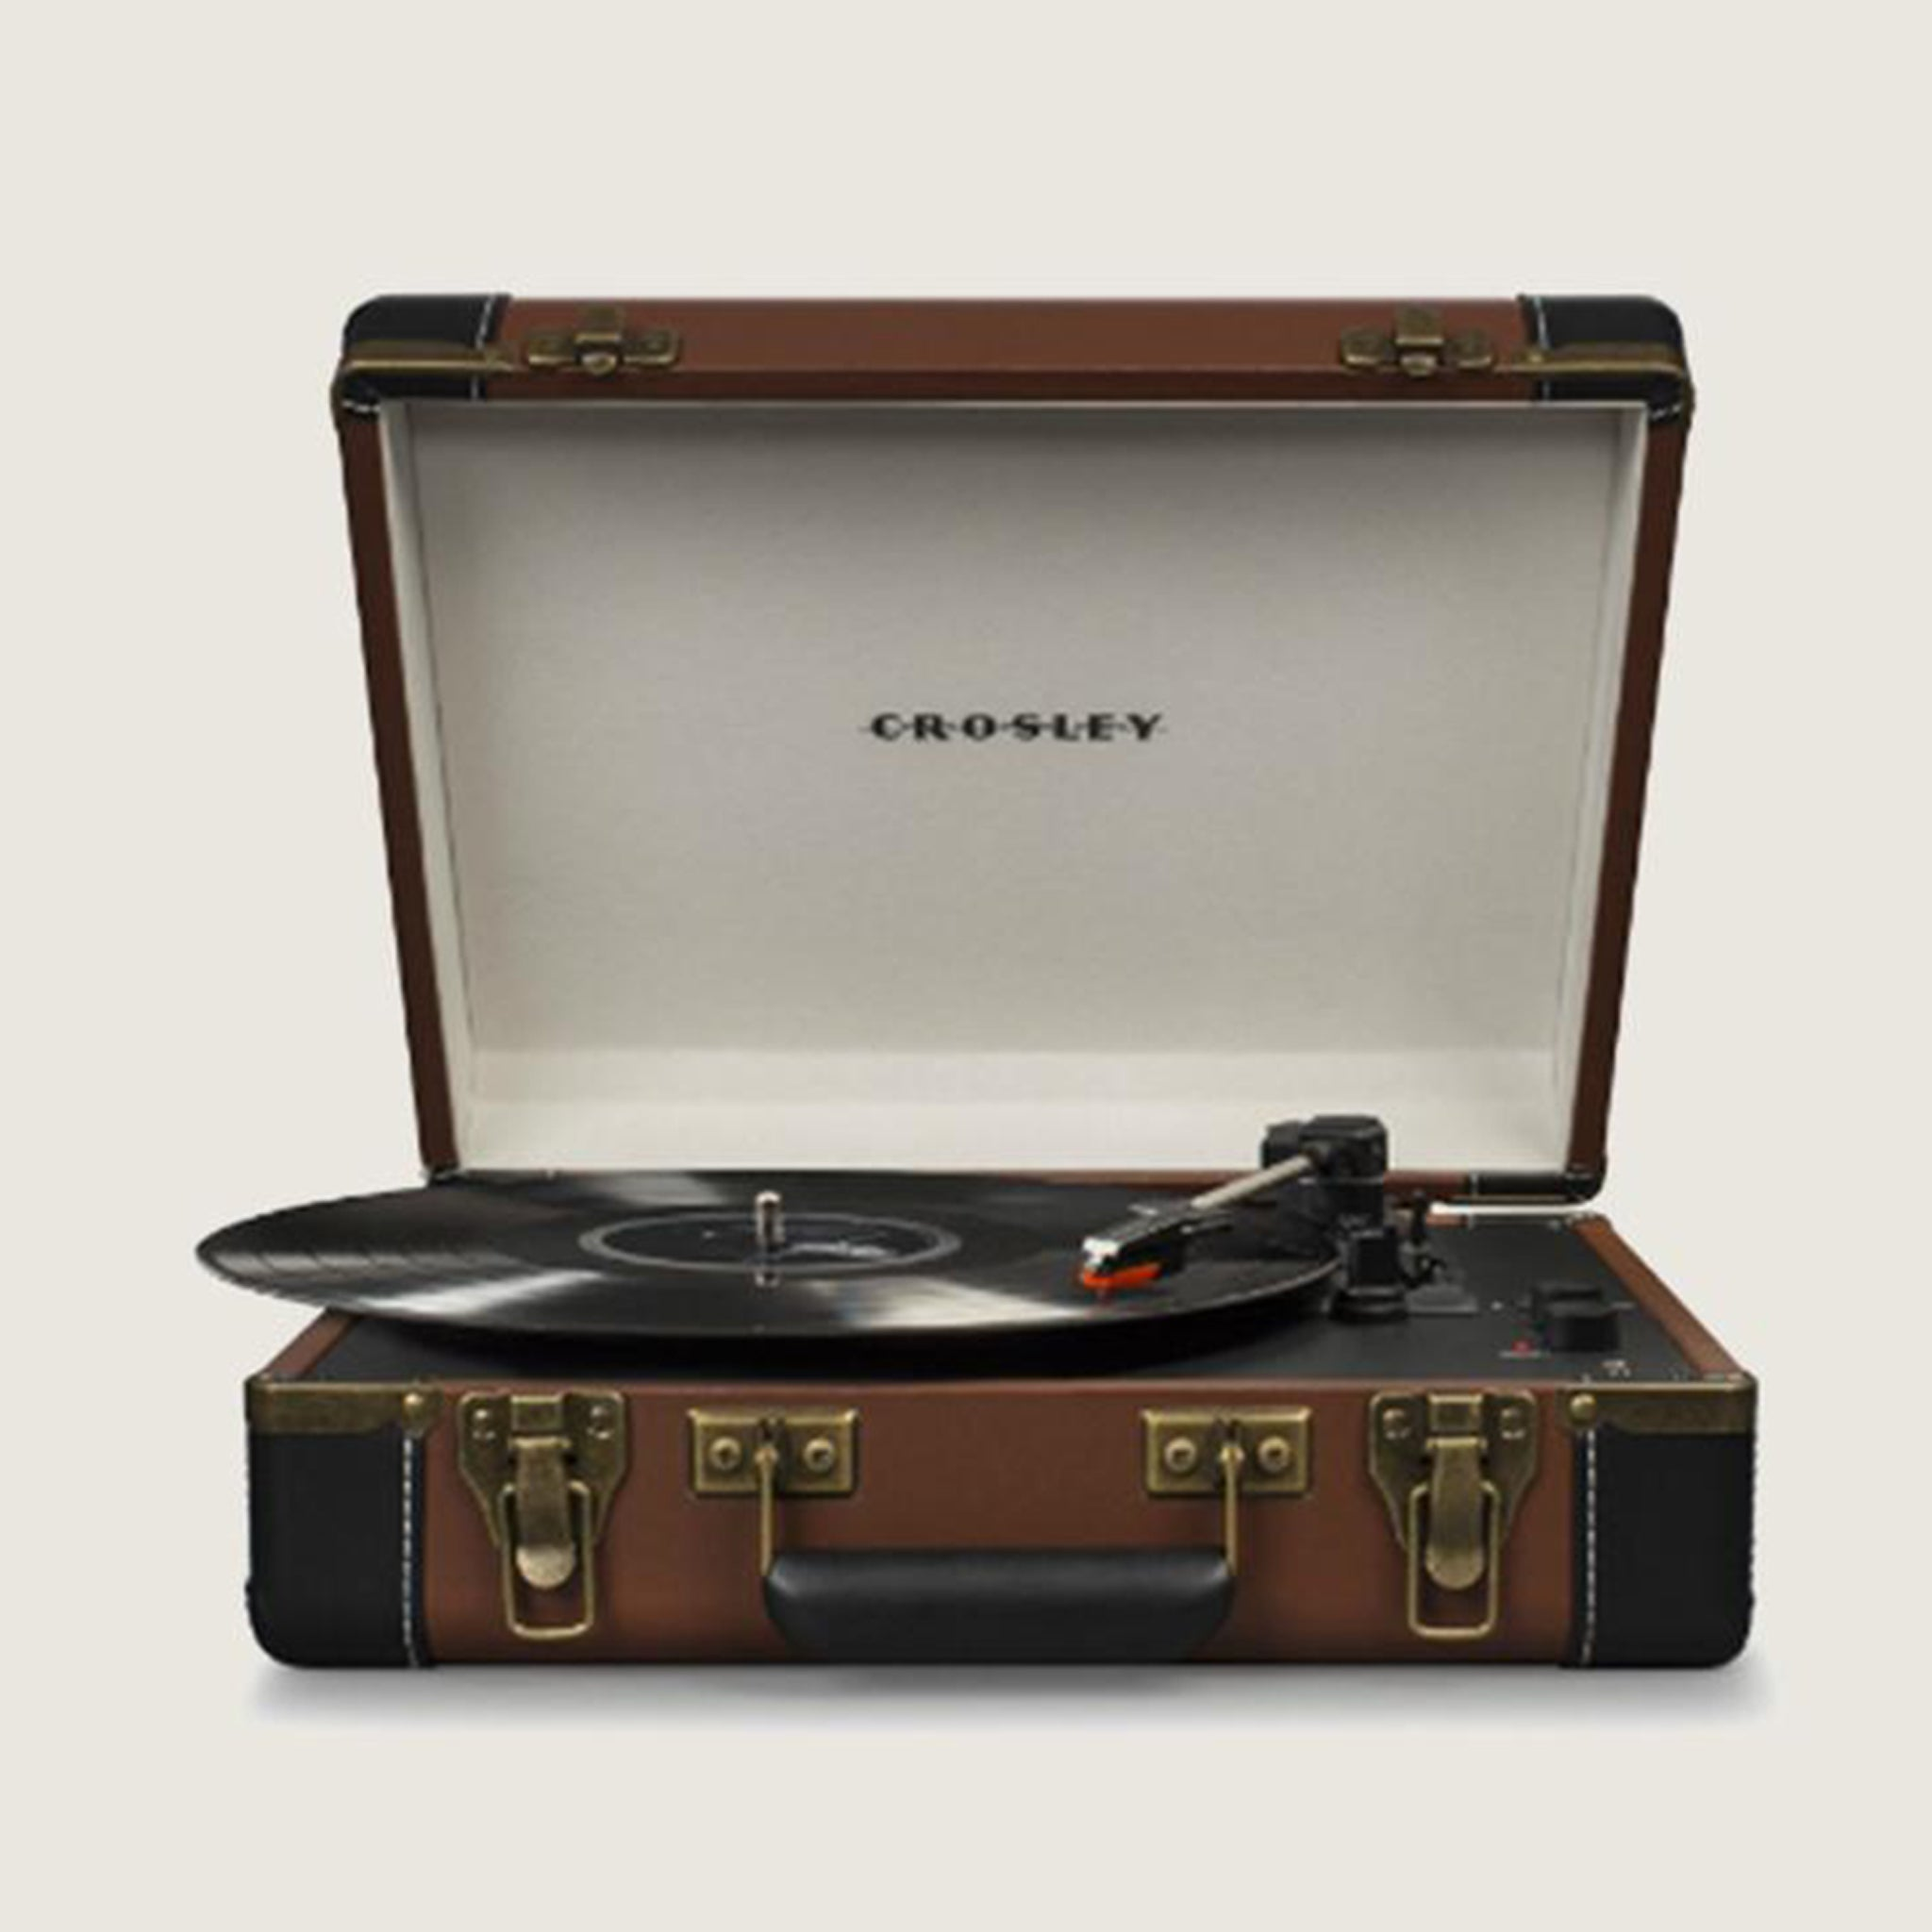 Executive Deluxe Turntable - Brown